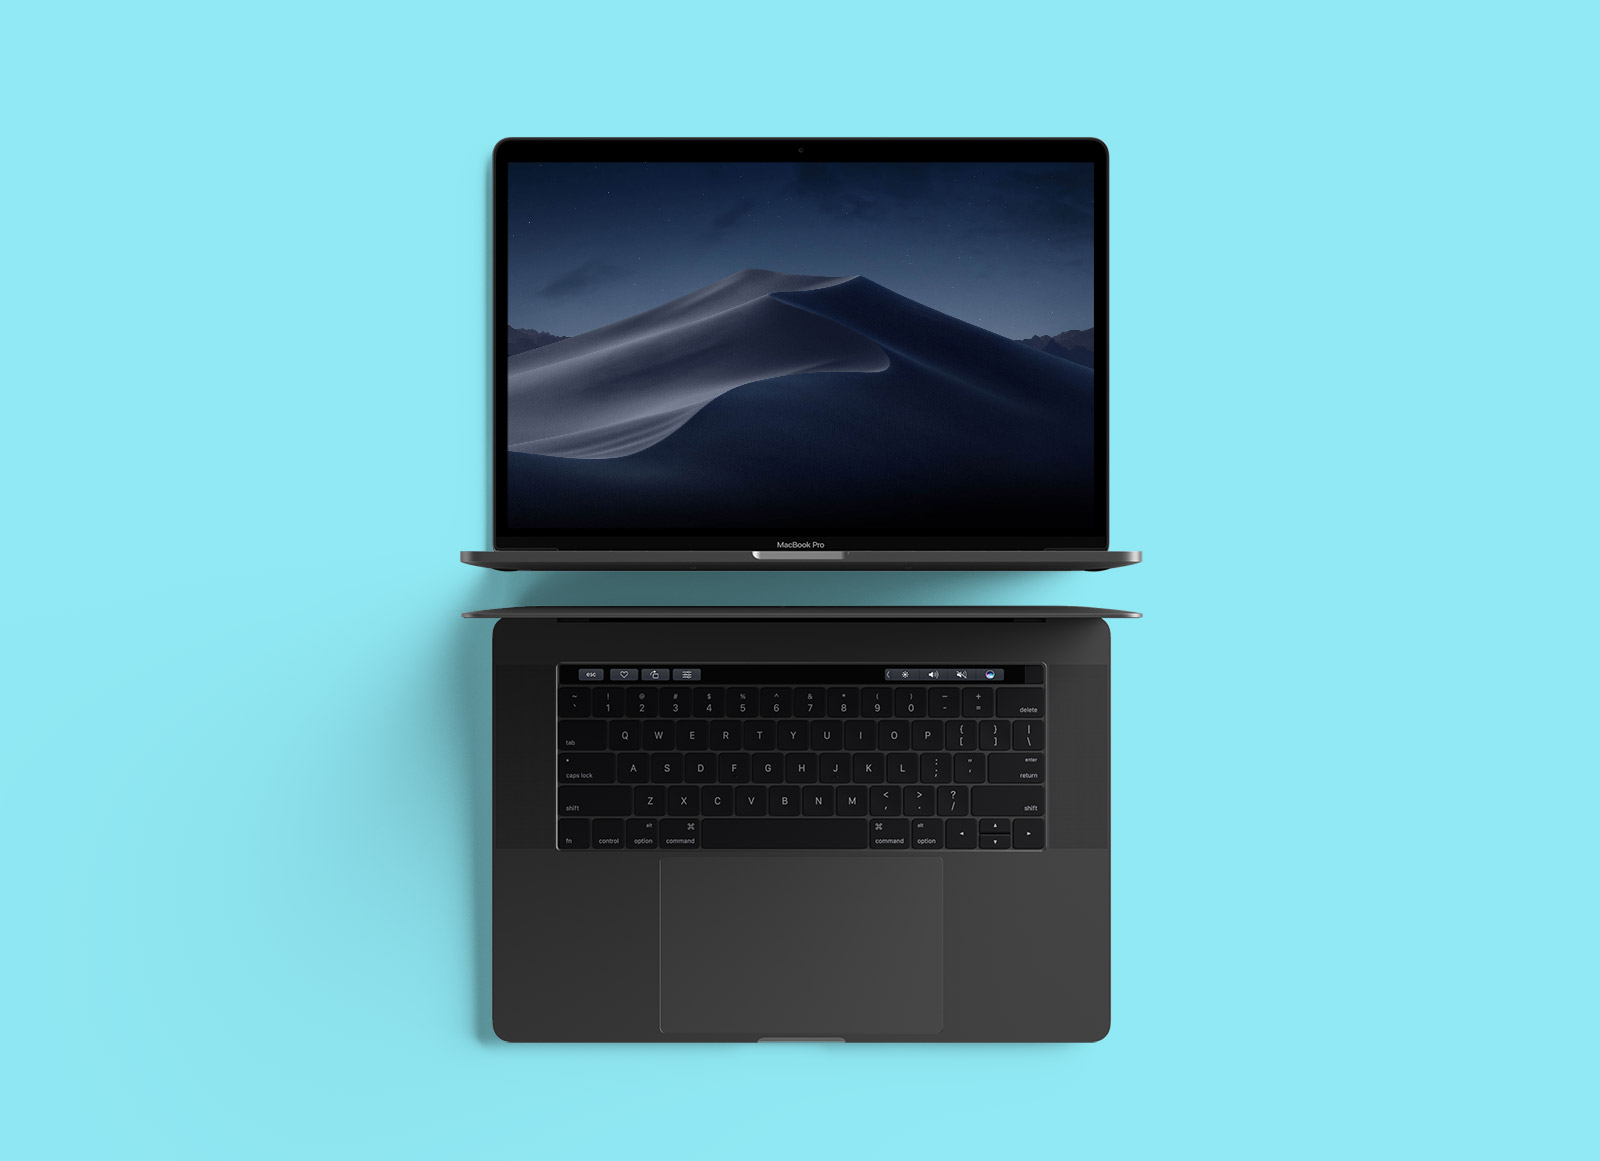 Free-Top-View-MacBook-Pro-Mockup-PSD